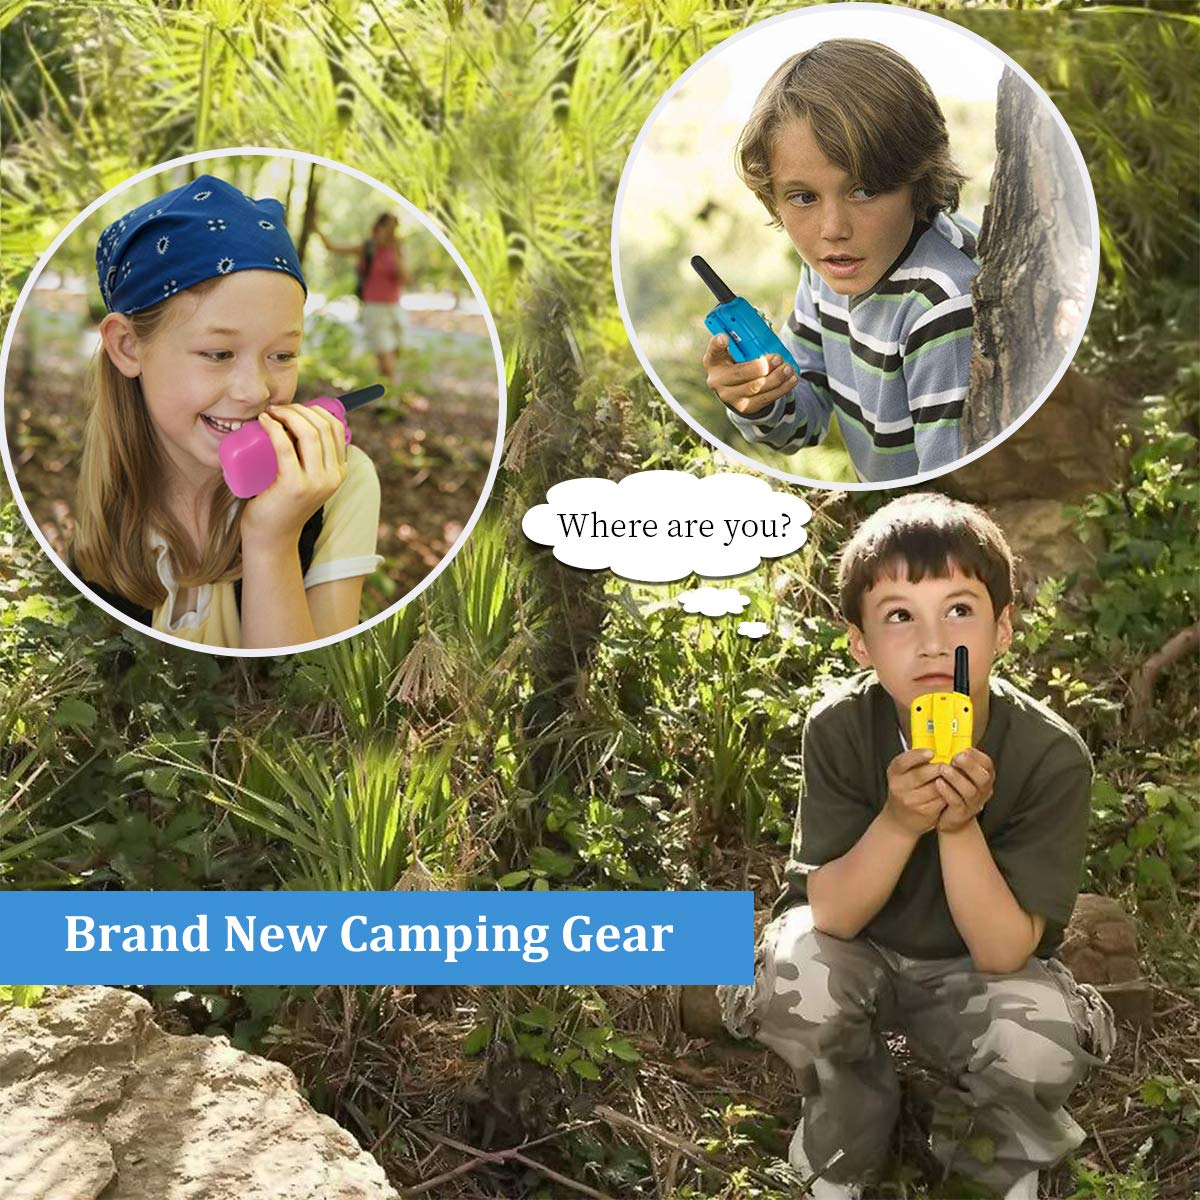 Outdoor Toys for 5-10 Year Old Boys Girls Pussan Kids Walkie Talkies 3 Pack Long Range 2 Miles 22 Channels Kids Camping Outside Summer Games Walky Talky for Children Gifts by Pussan (Image #5)